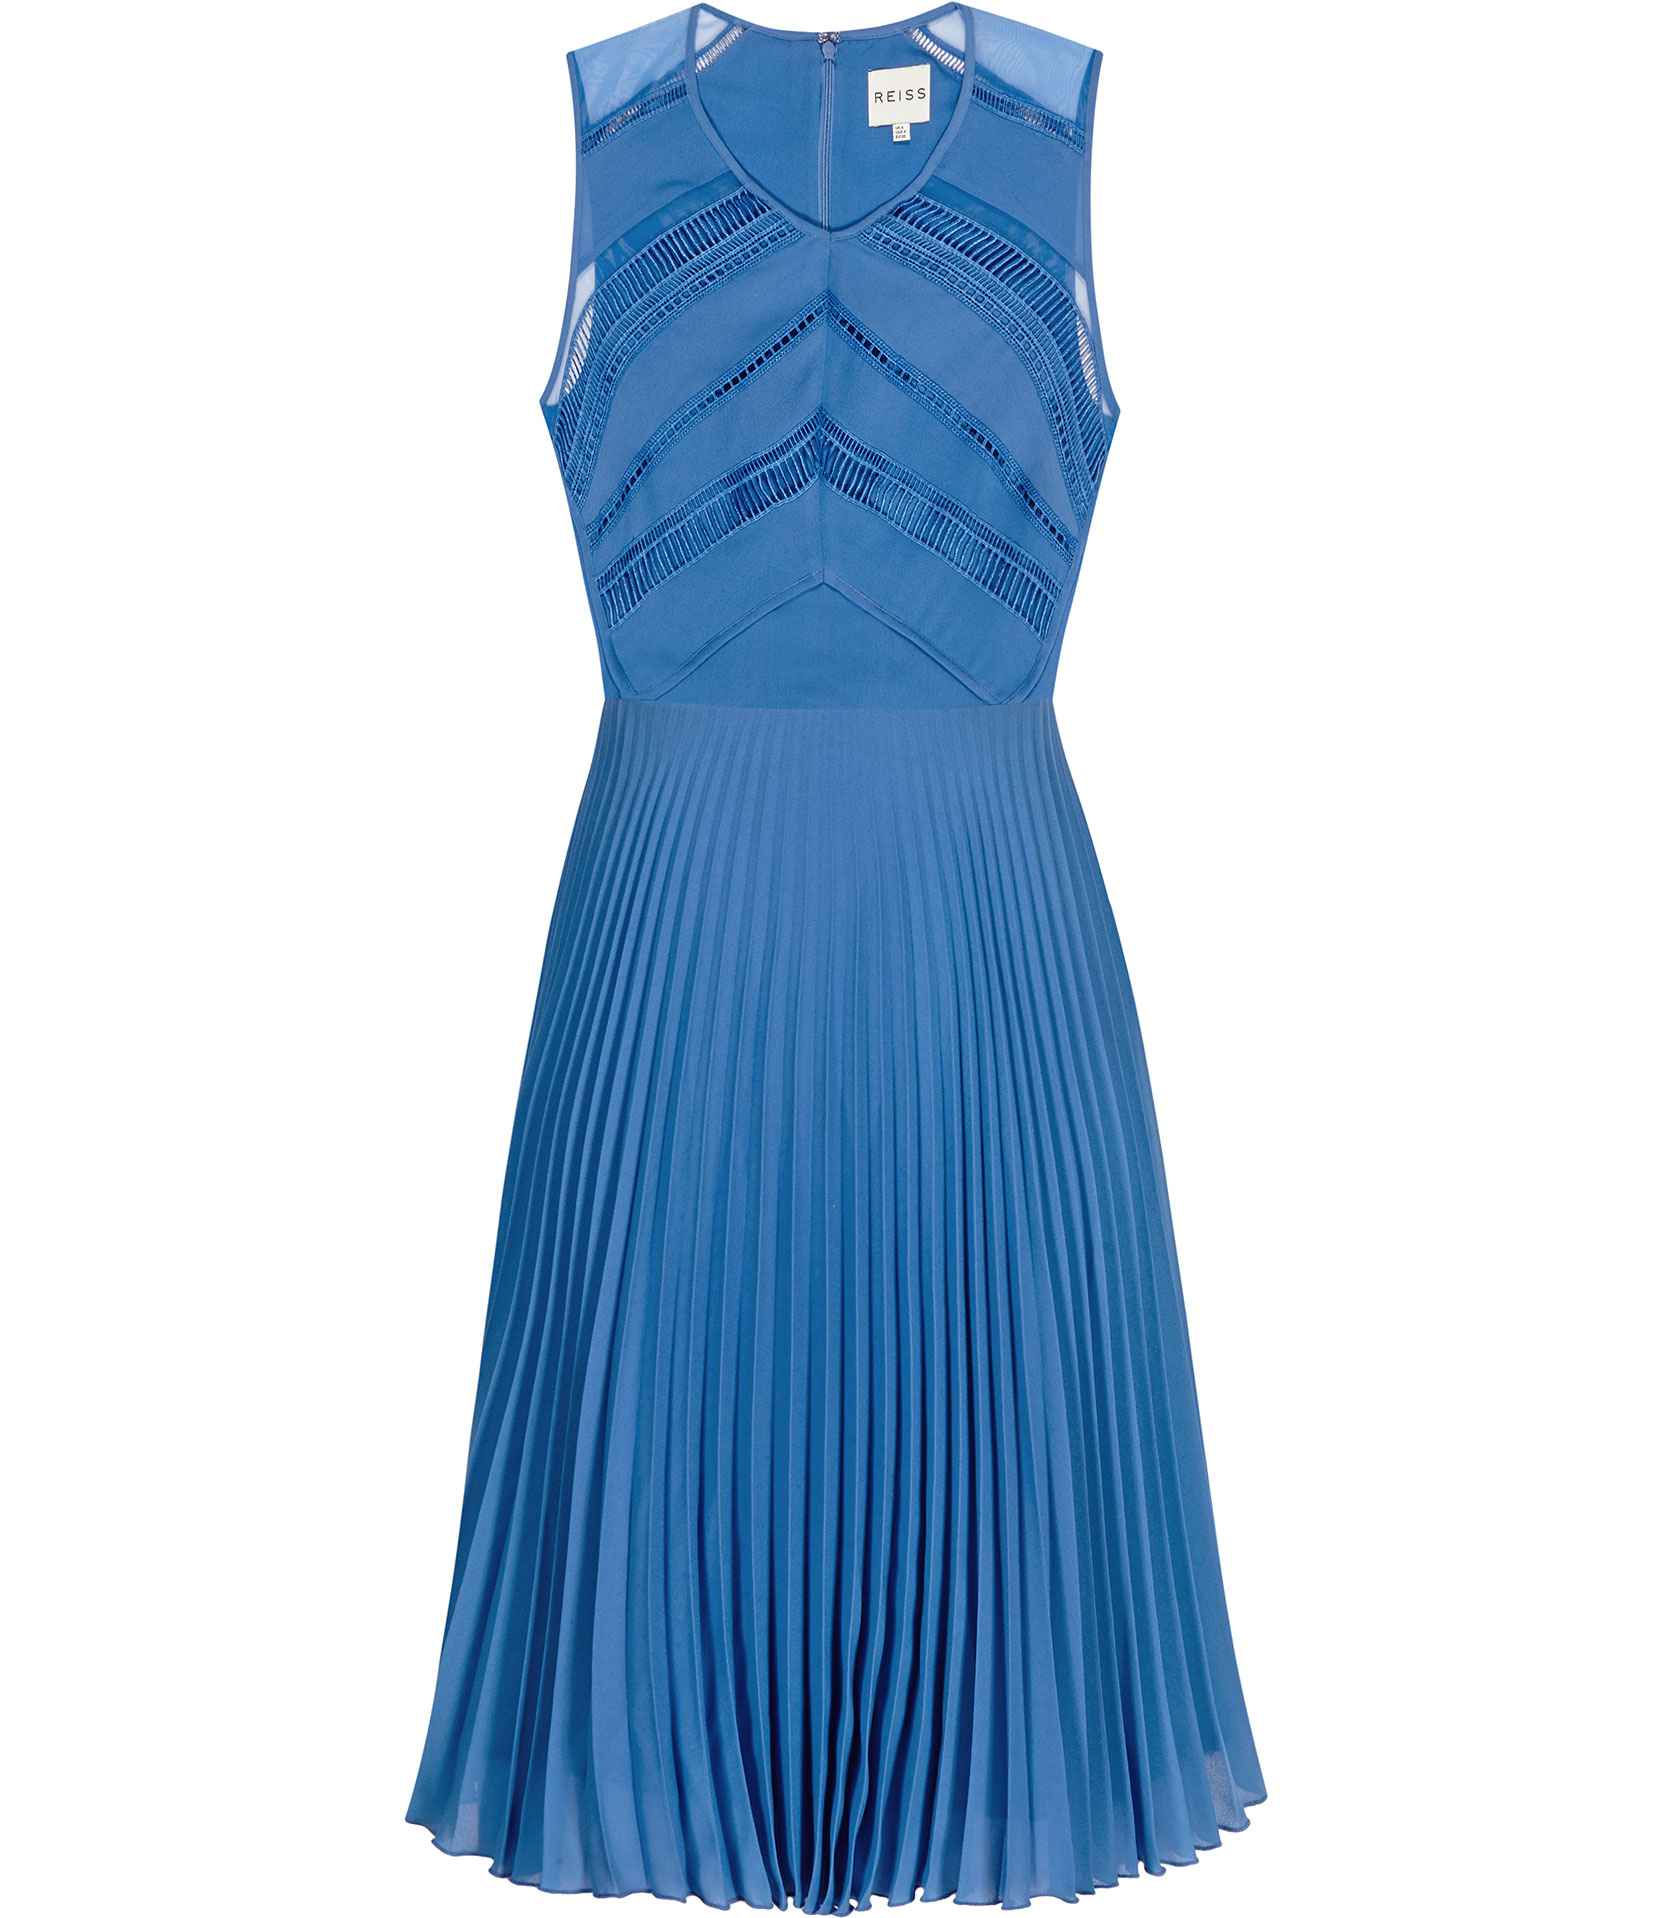 Reiss Tillie Lace Top Pleated Dress in Blue | Lyst